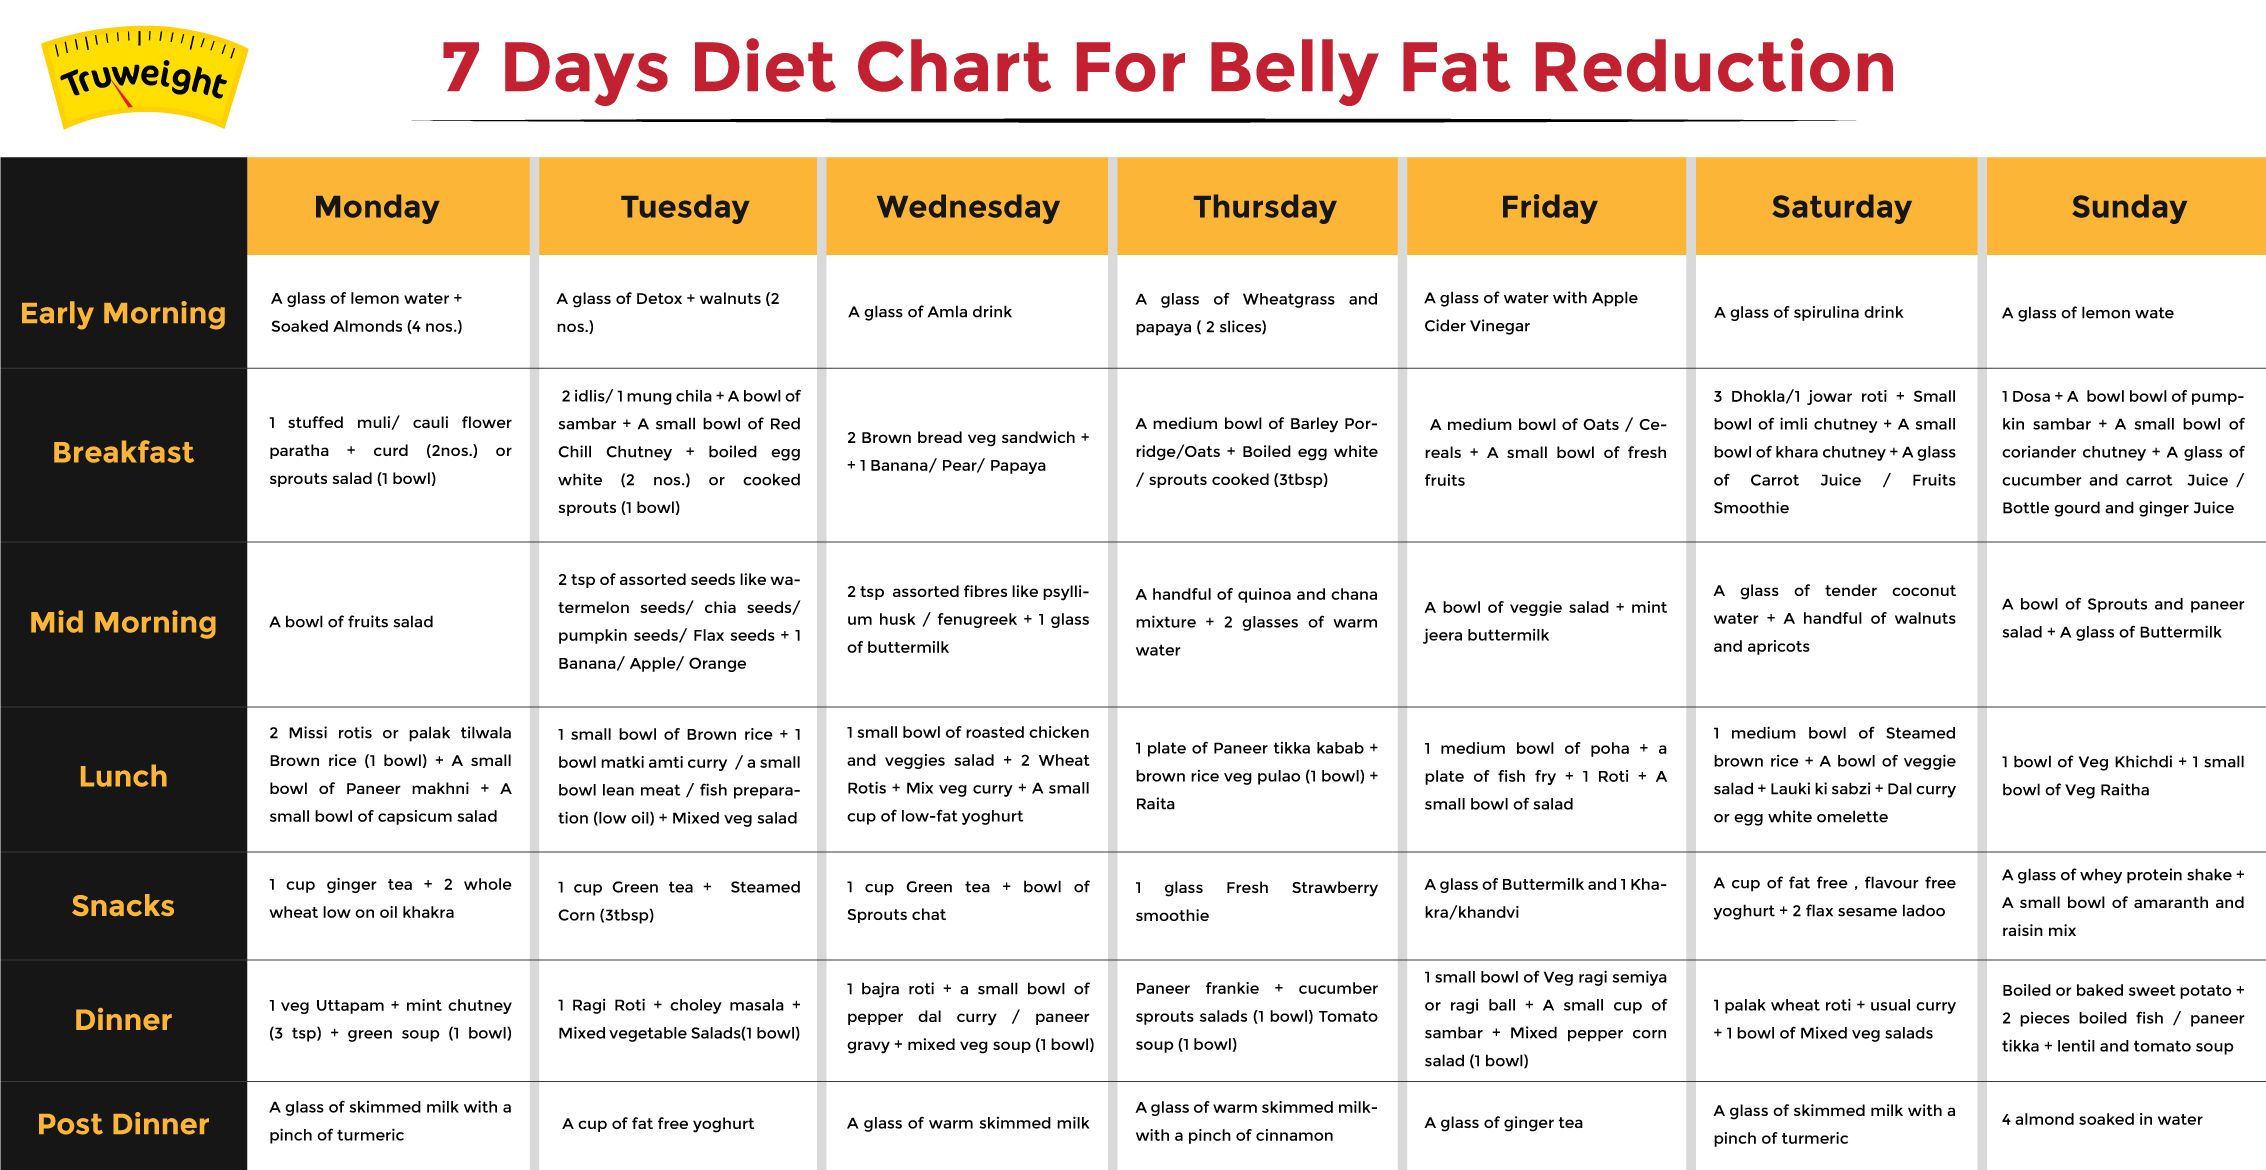 Fast diet plan to lose belly fat